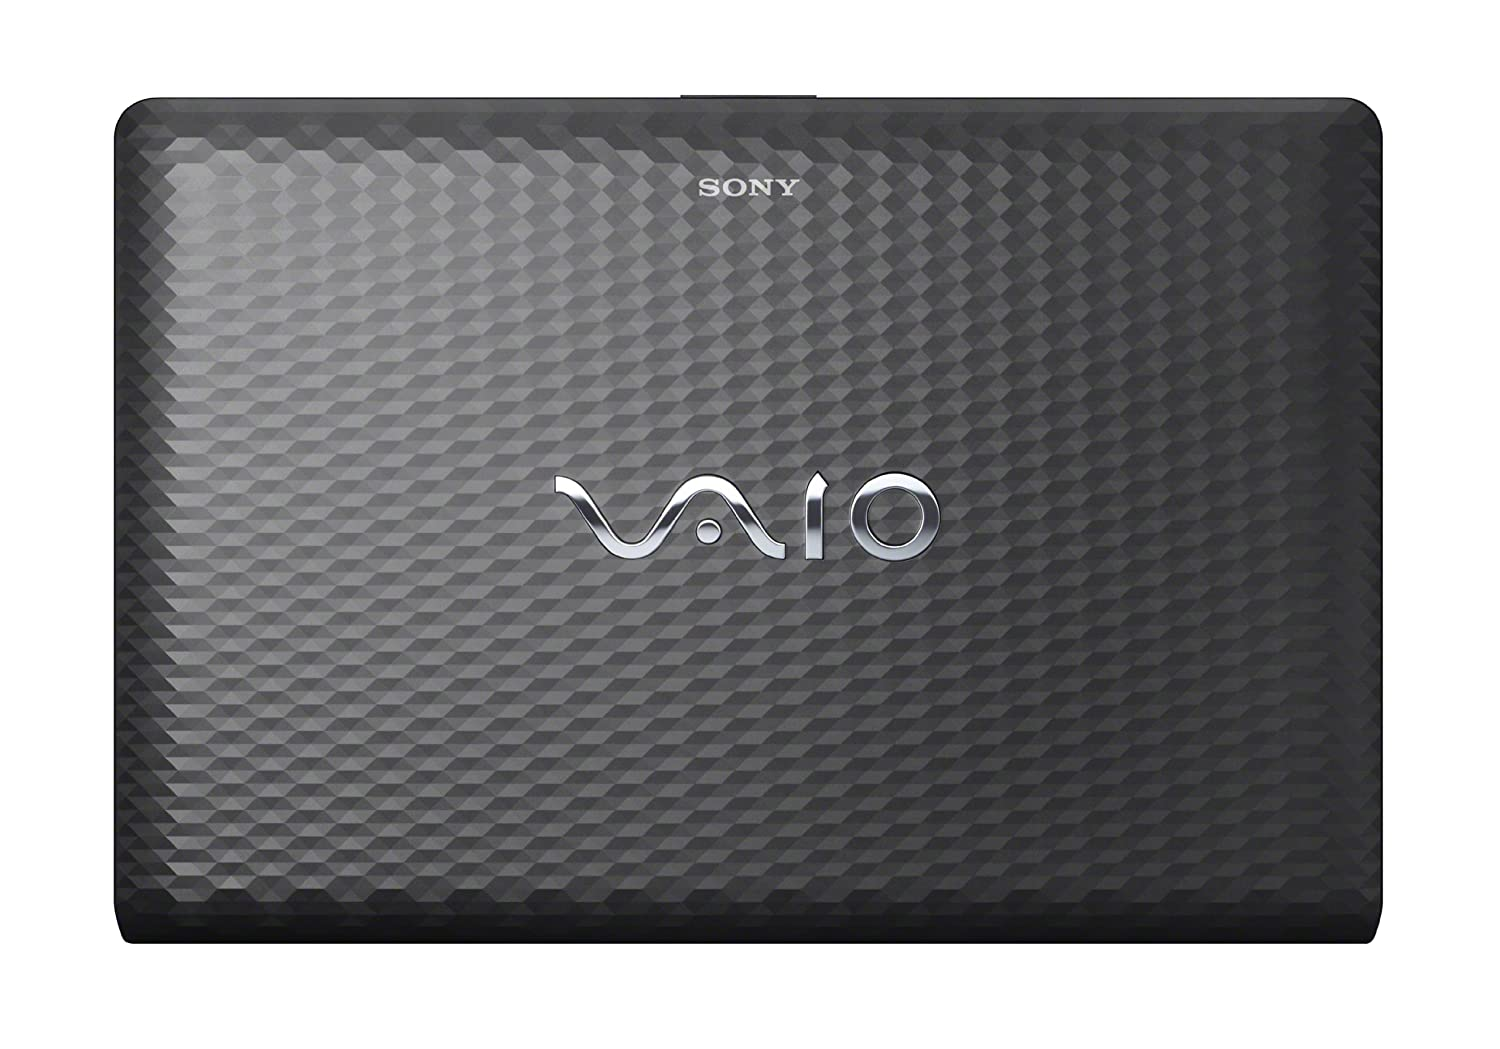 Sony Vaio VPCEH37FX/L Shared Library Driver for PC